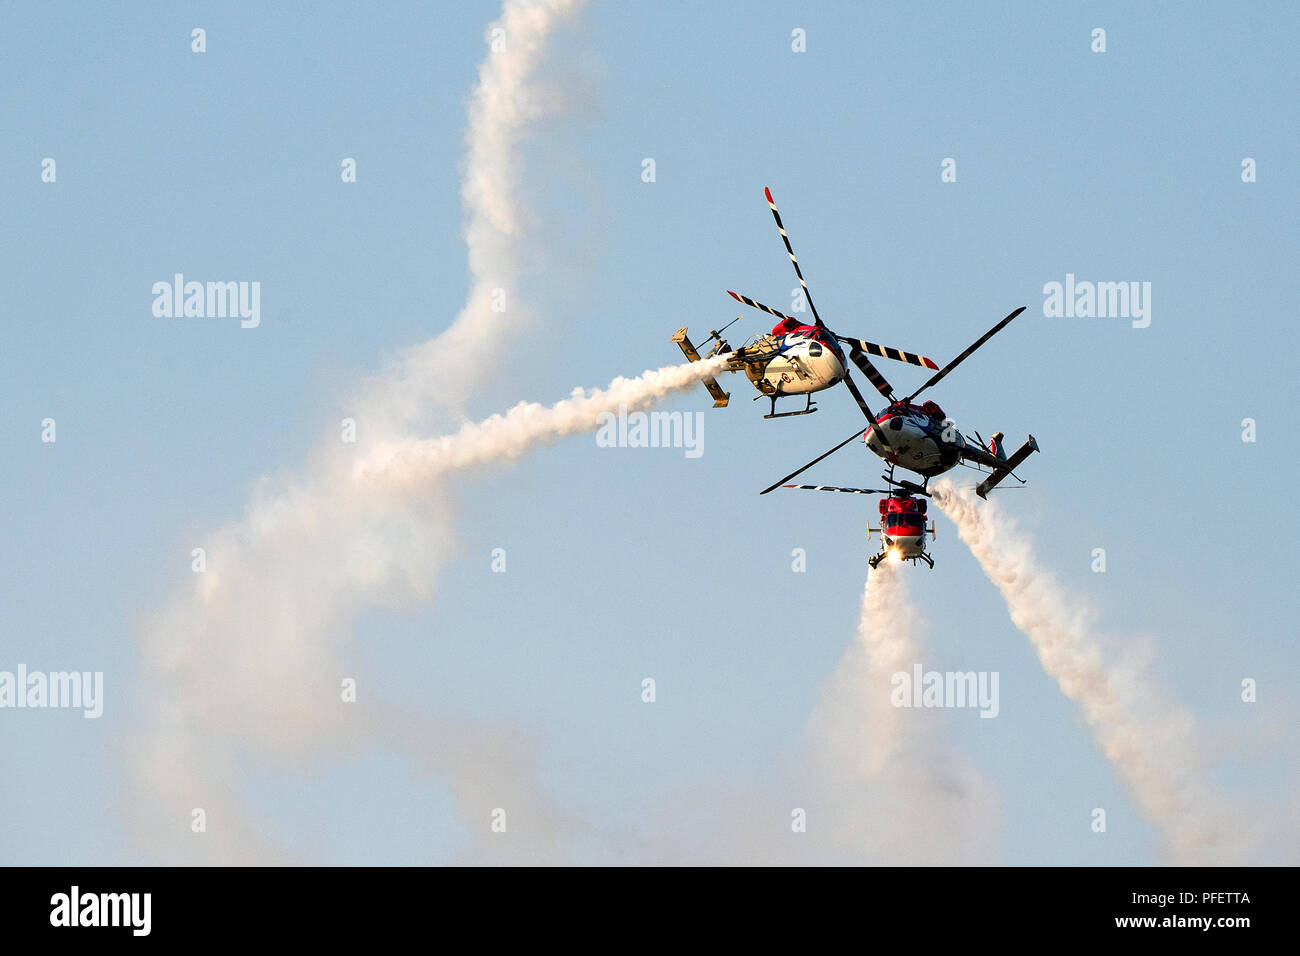 The image of  Dhruv Helicopter seen during one of the aerobatics display at Aero India show in Yelahanka - Stock Image